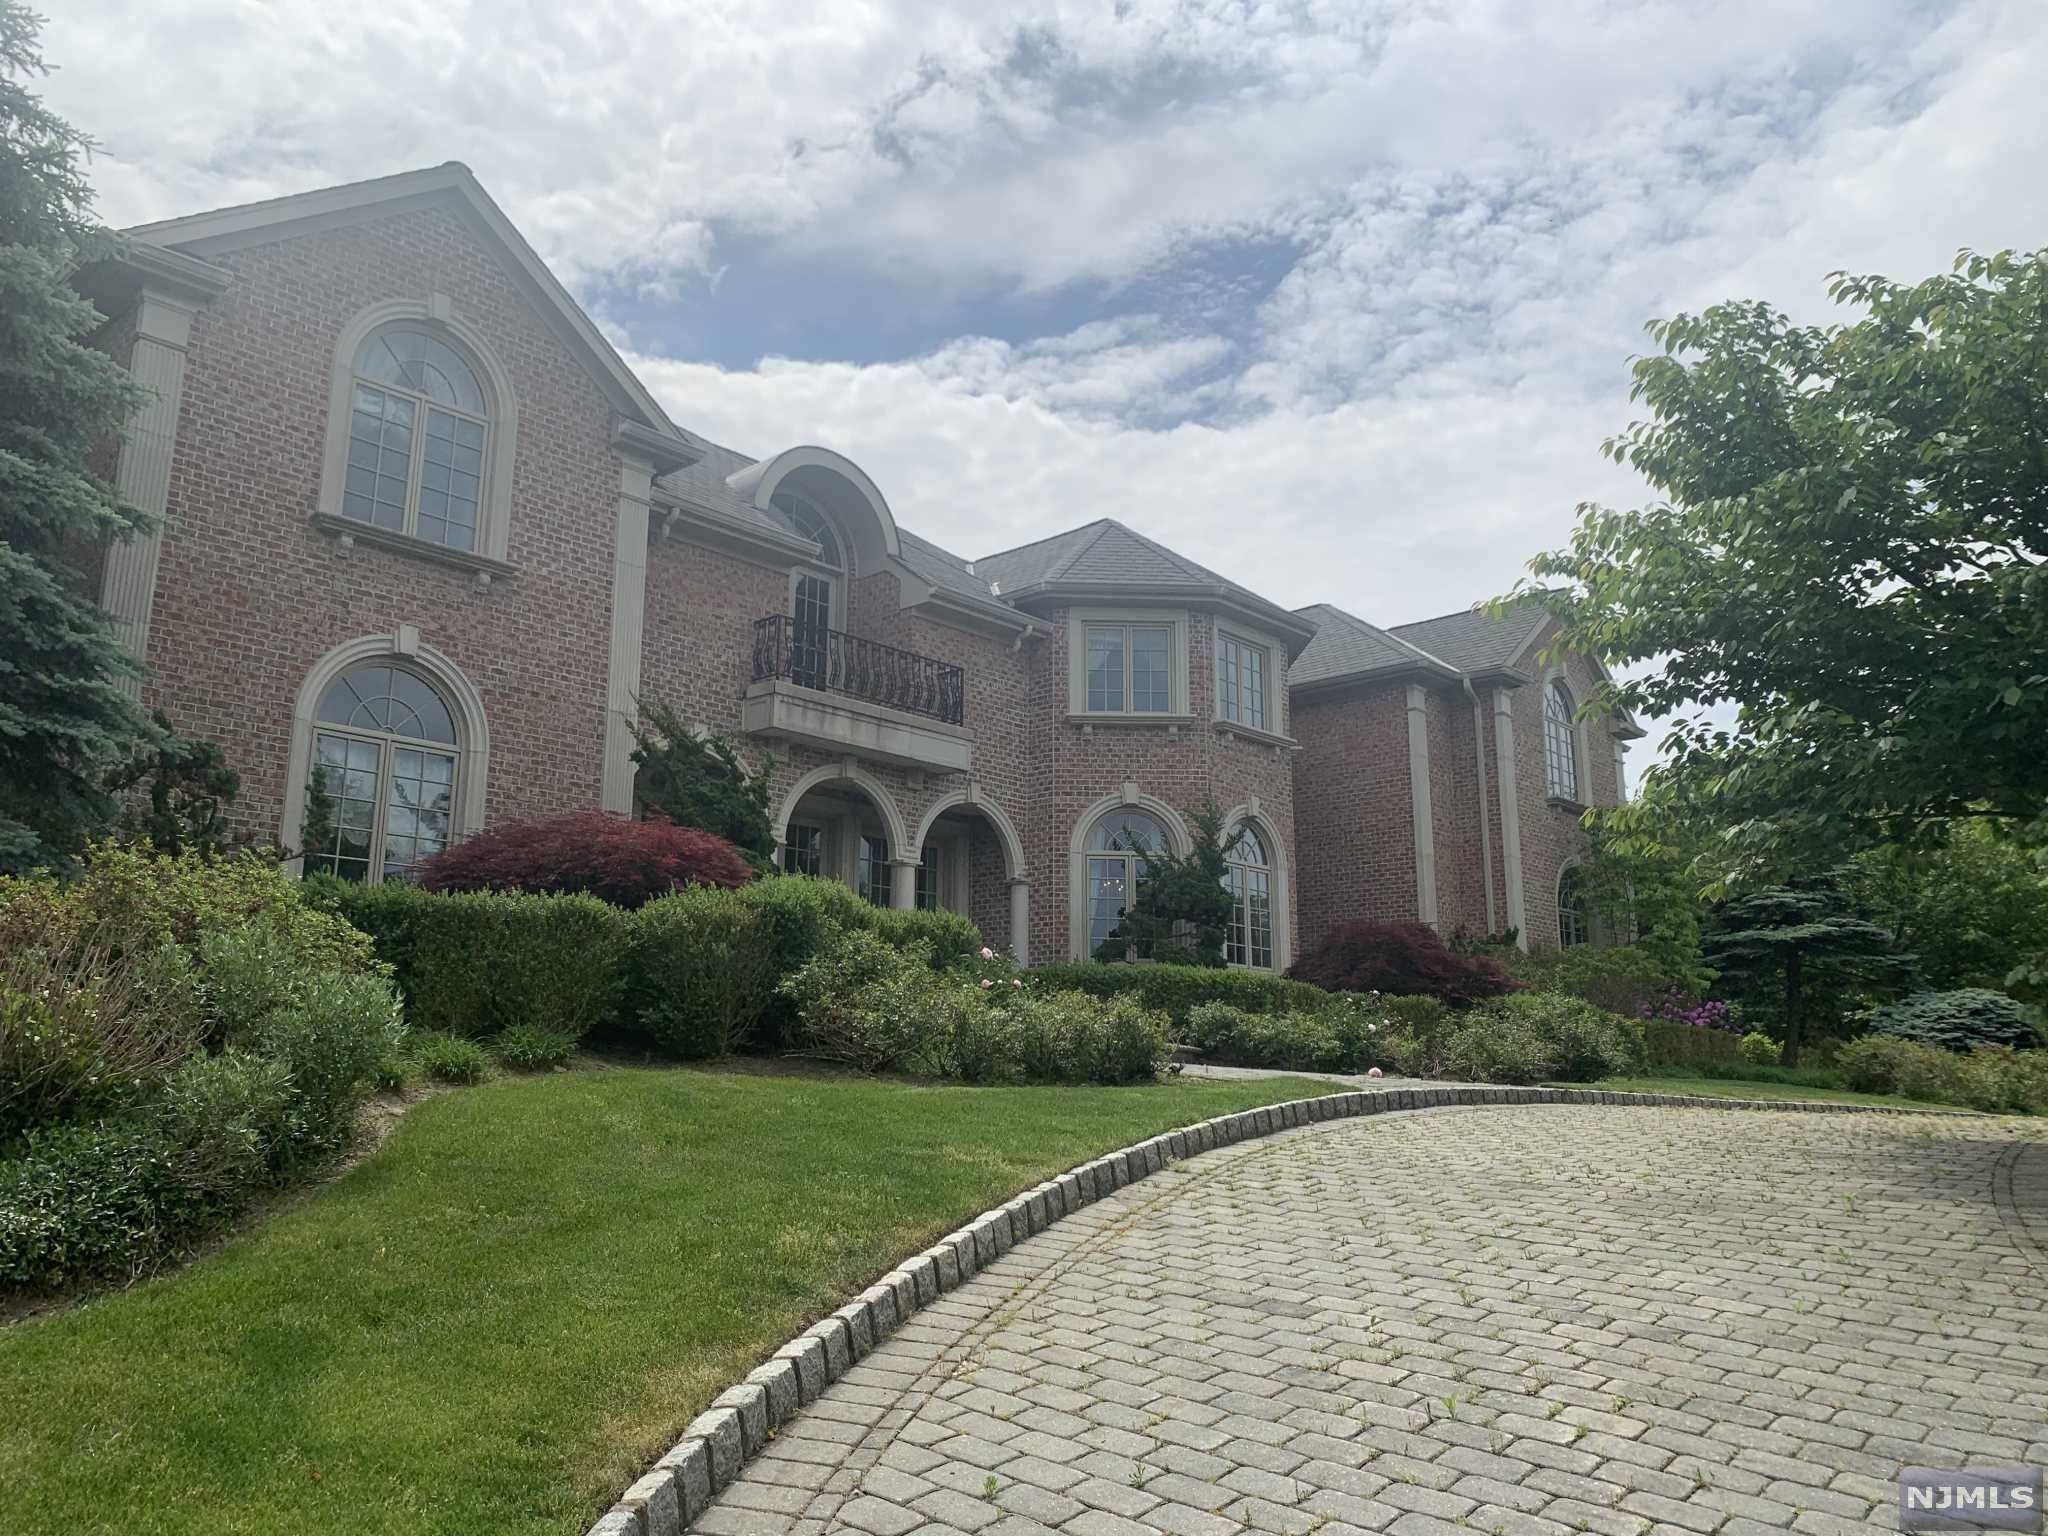 2. Single Family Home for Sale at 110 Hoover Drive Cresskill, New Jersey, 07626 United States